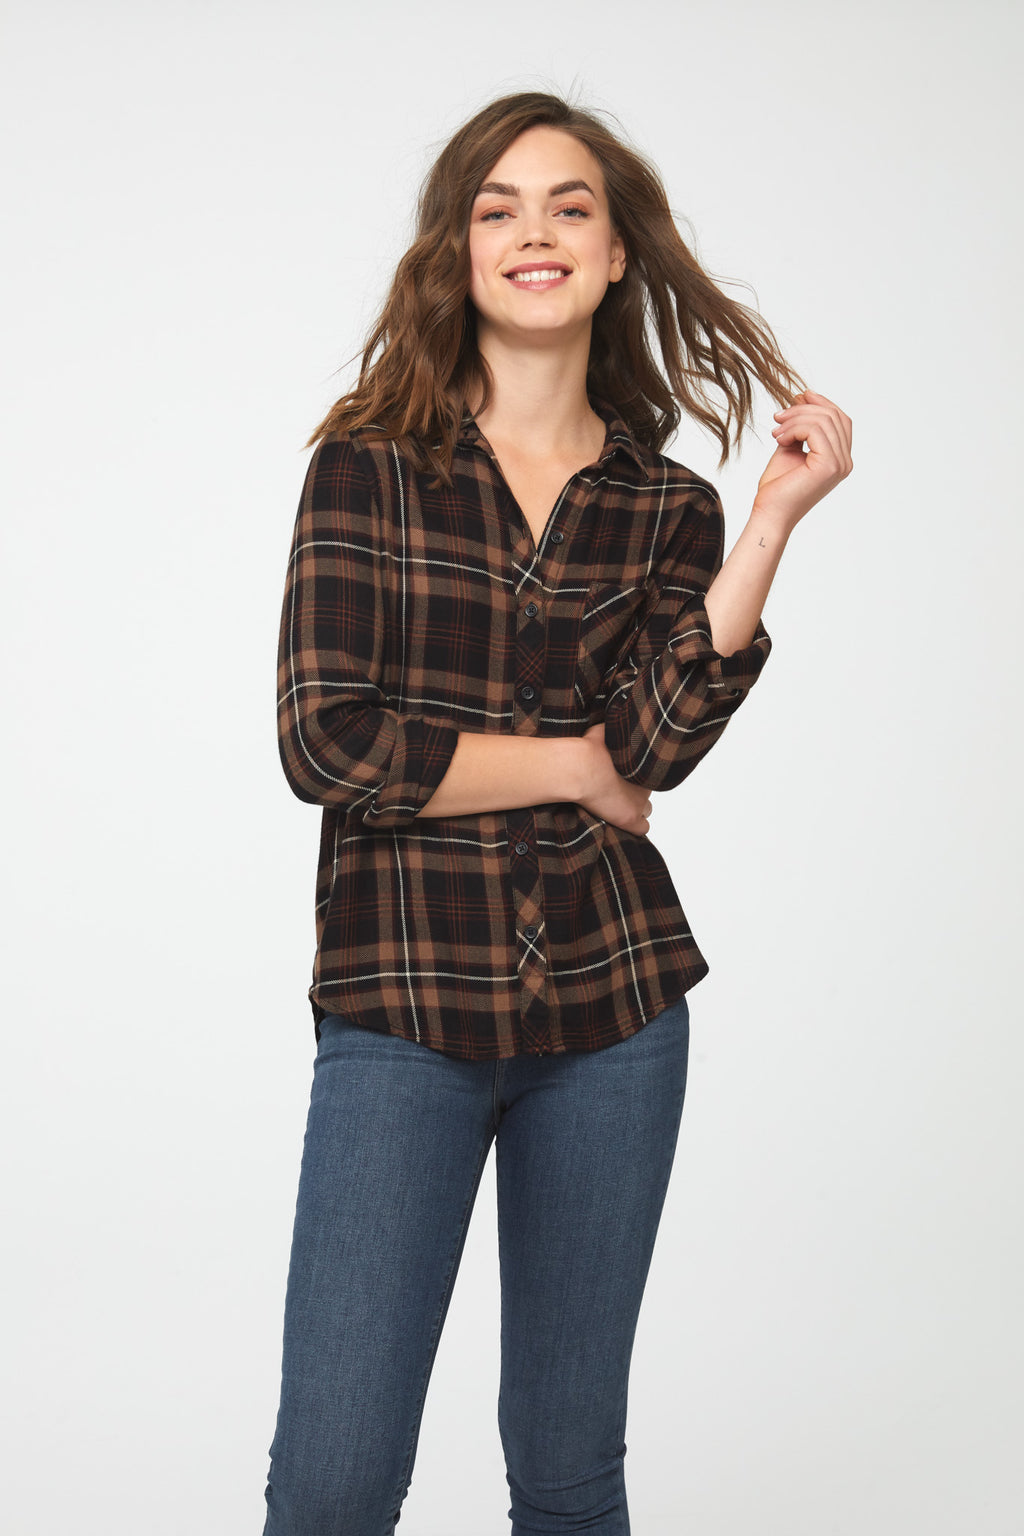 Woman wearing a long sleeve, button-down, earth-toned plaid shirt with a single chest pocket